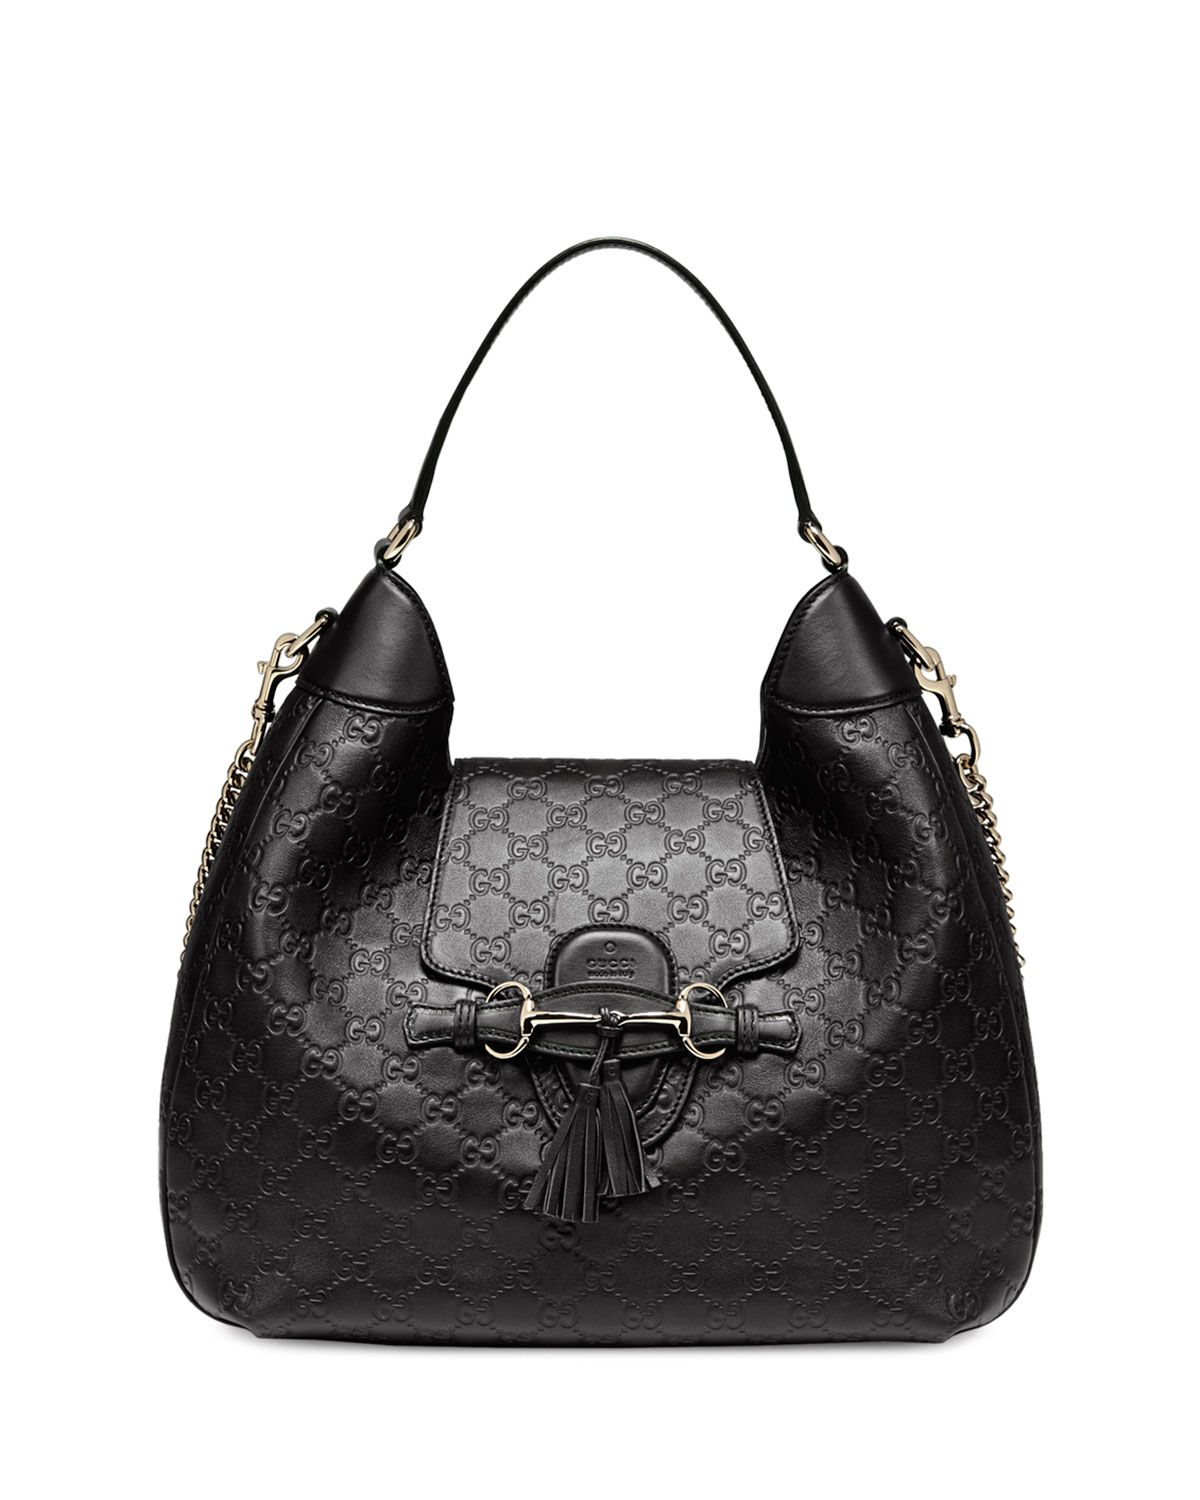 7f132eed238 Gucci Emily Guccissima Leather Hobo Bag